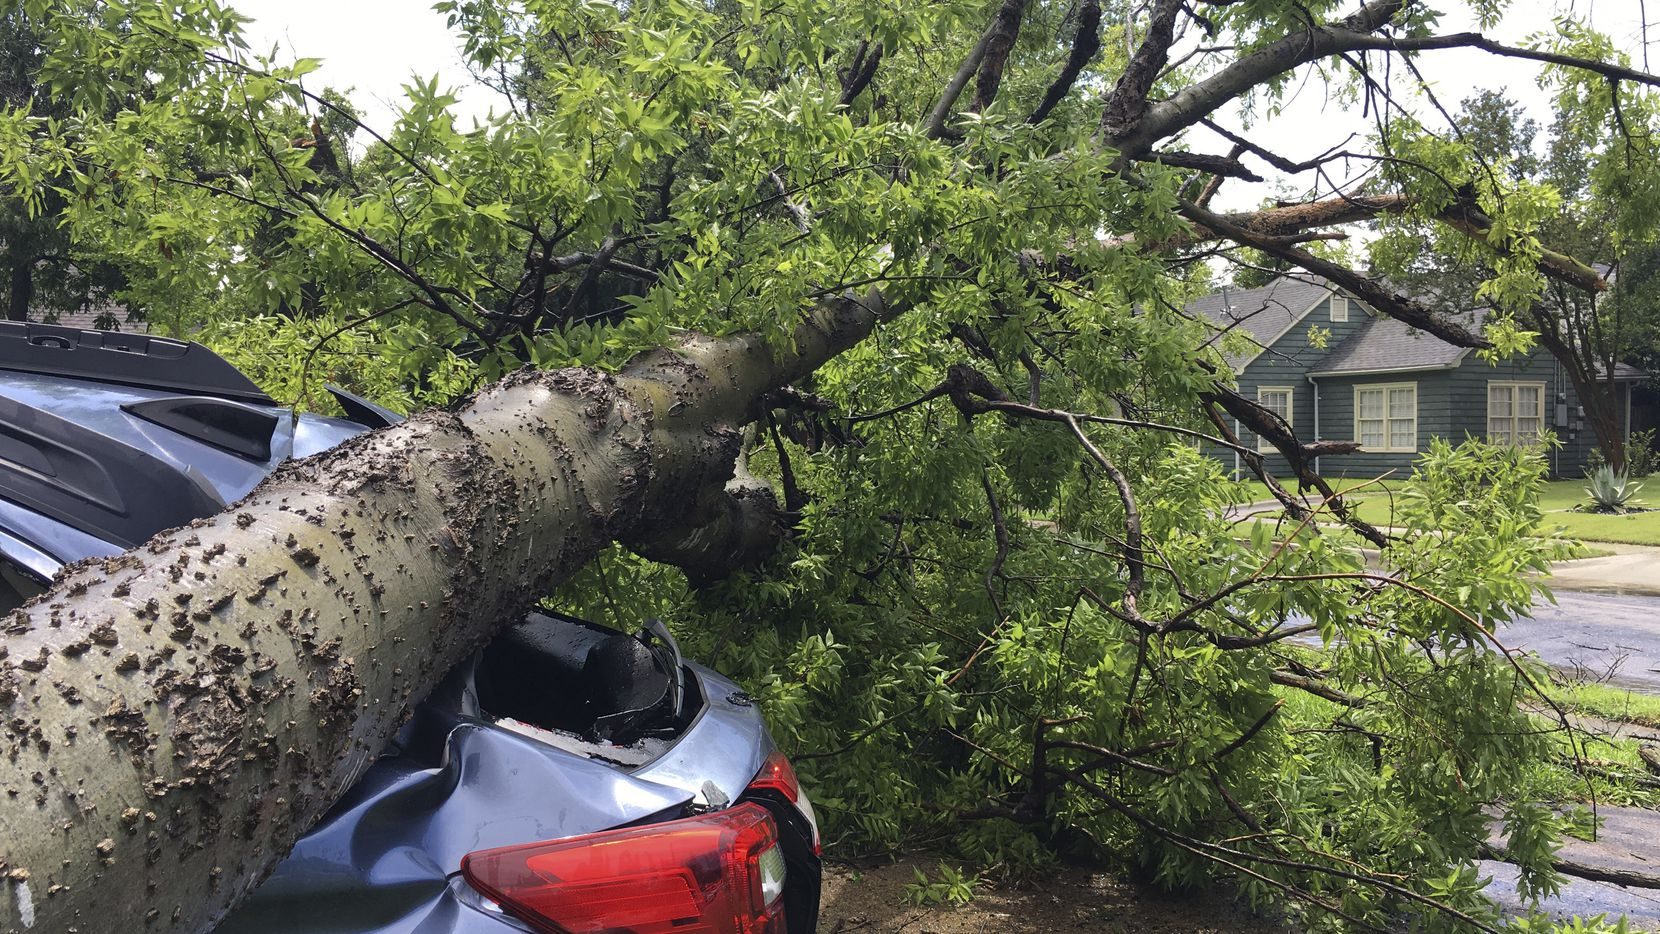 A tree from one property smashed a car in a neighbor's driveway when it fell in a severe storm in the area of North Henderson and I-75/Central Expressway on Sunday afternoon.